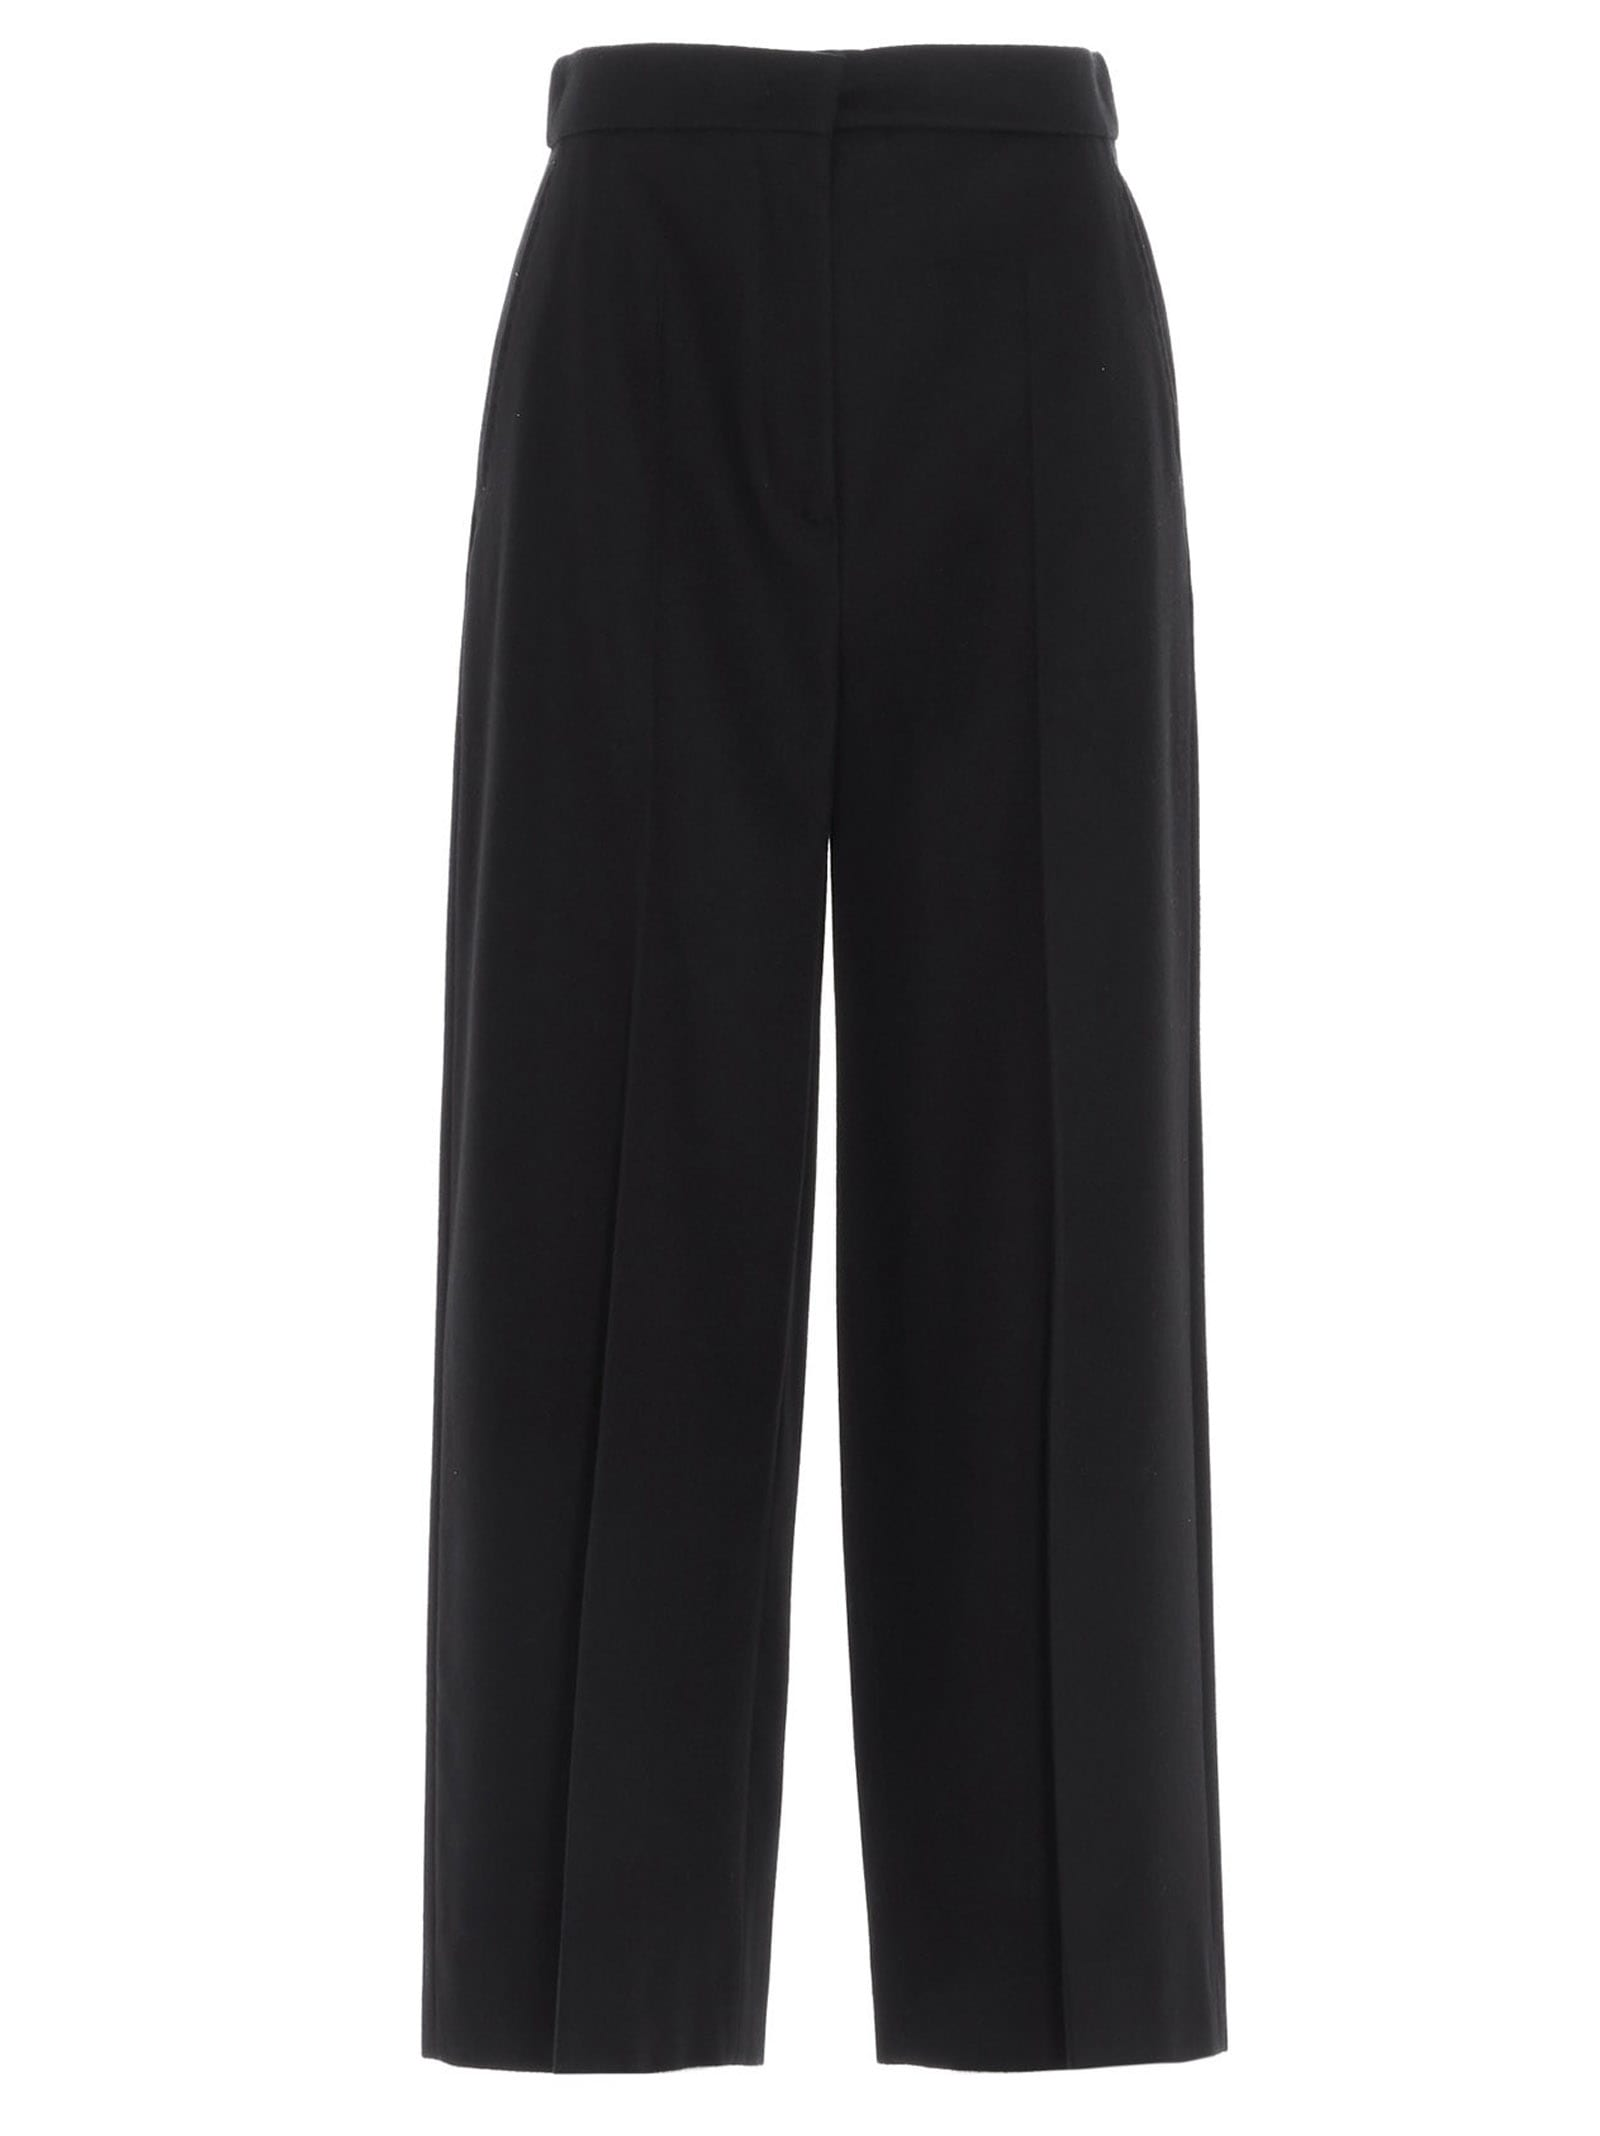 Max Mara Pants ARTELLO PANTS